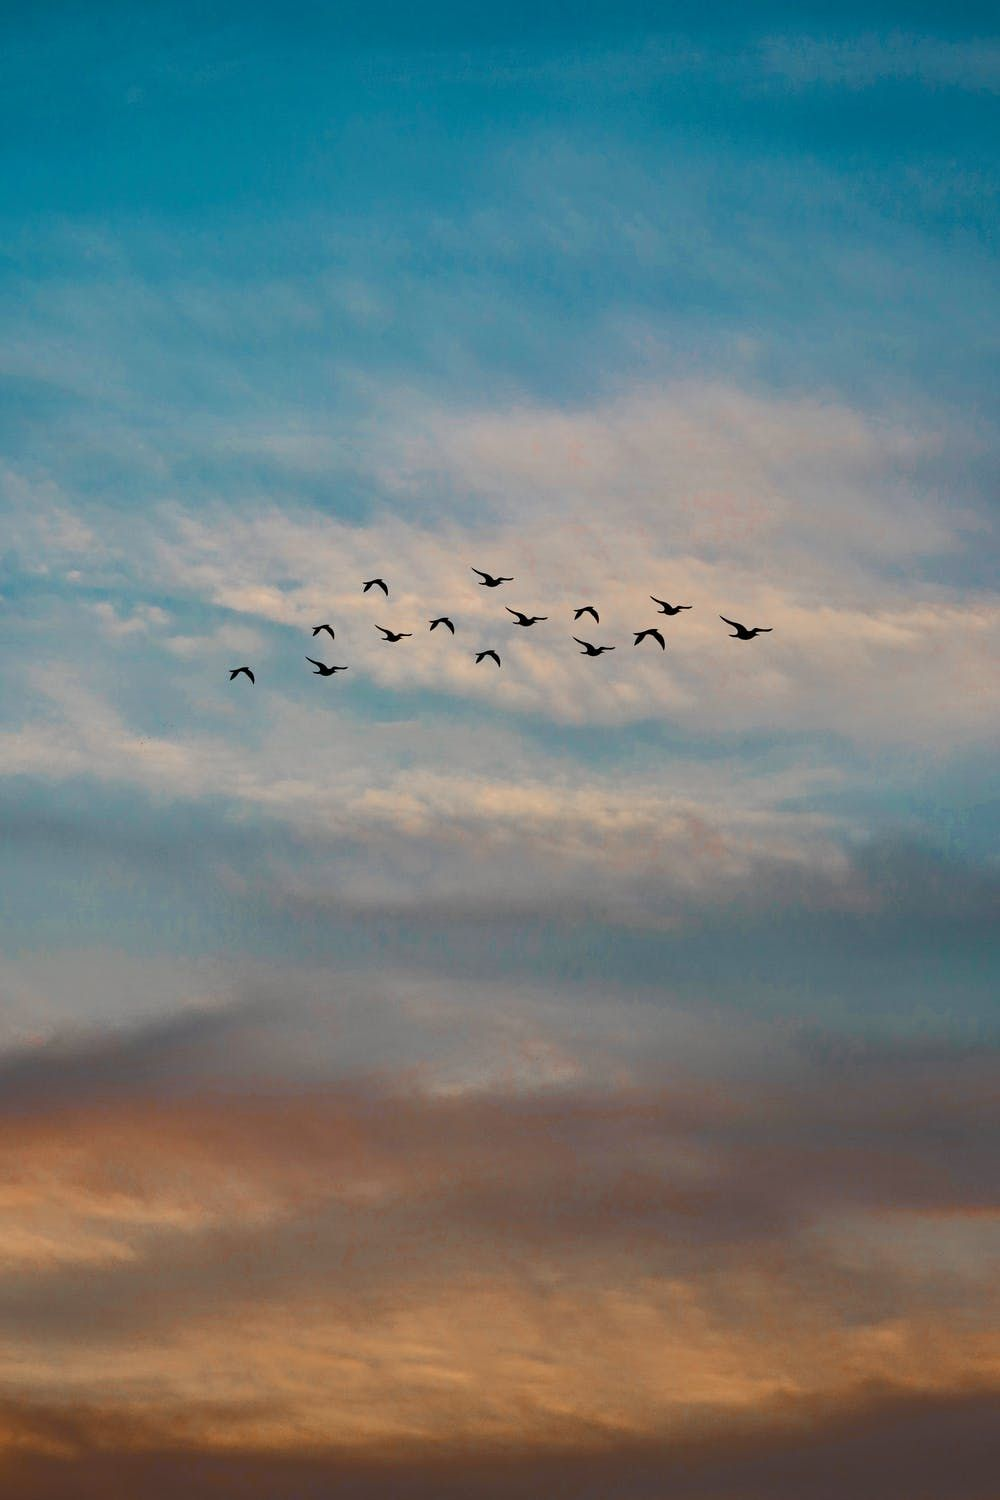 silhouettes of birds flying through blue sky